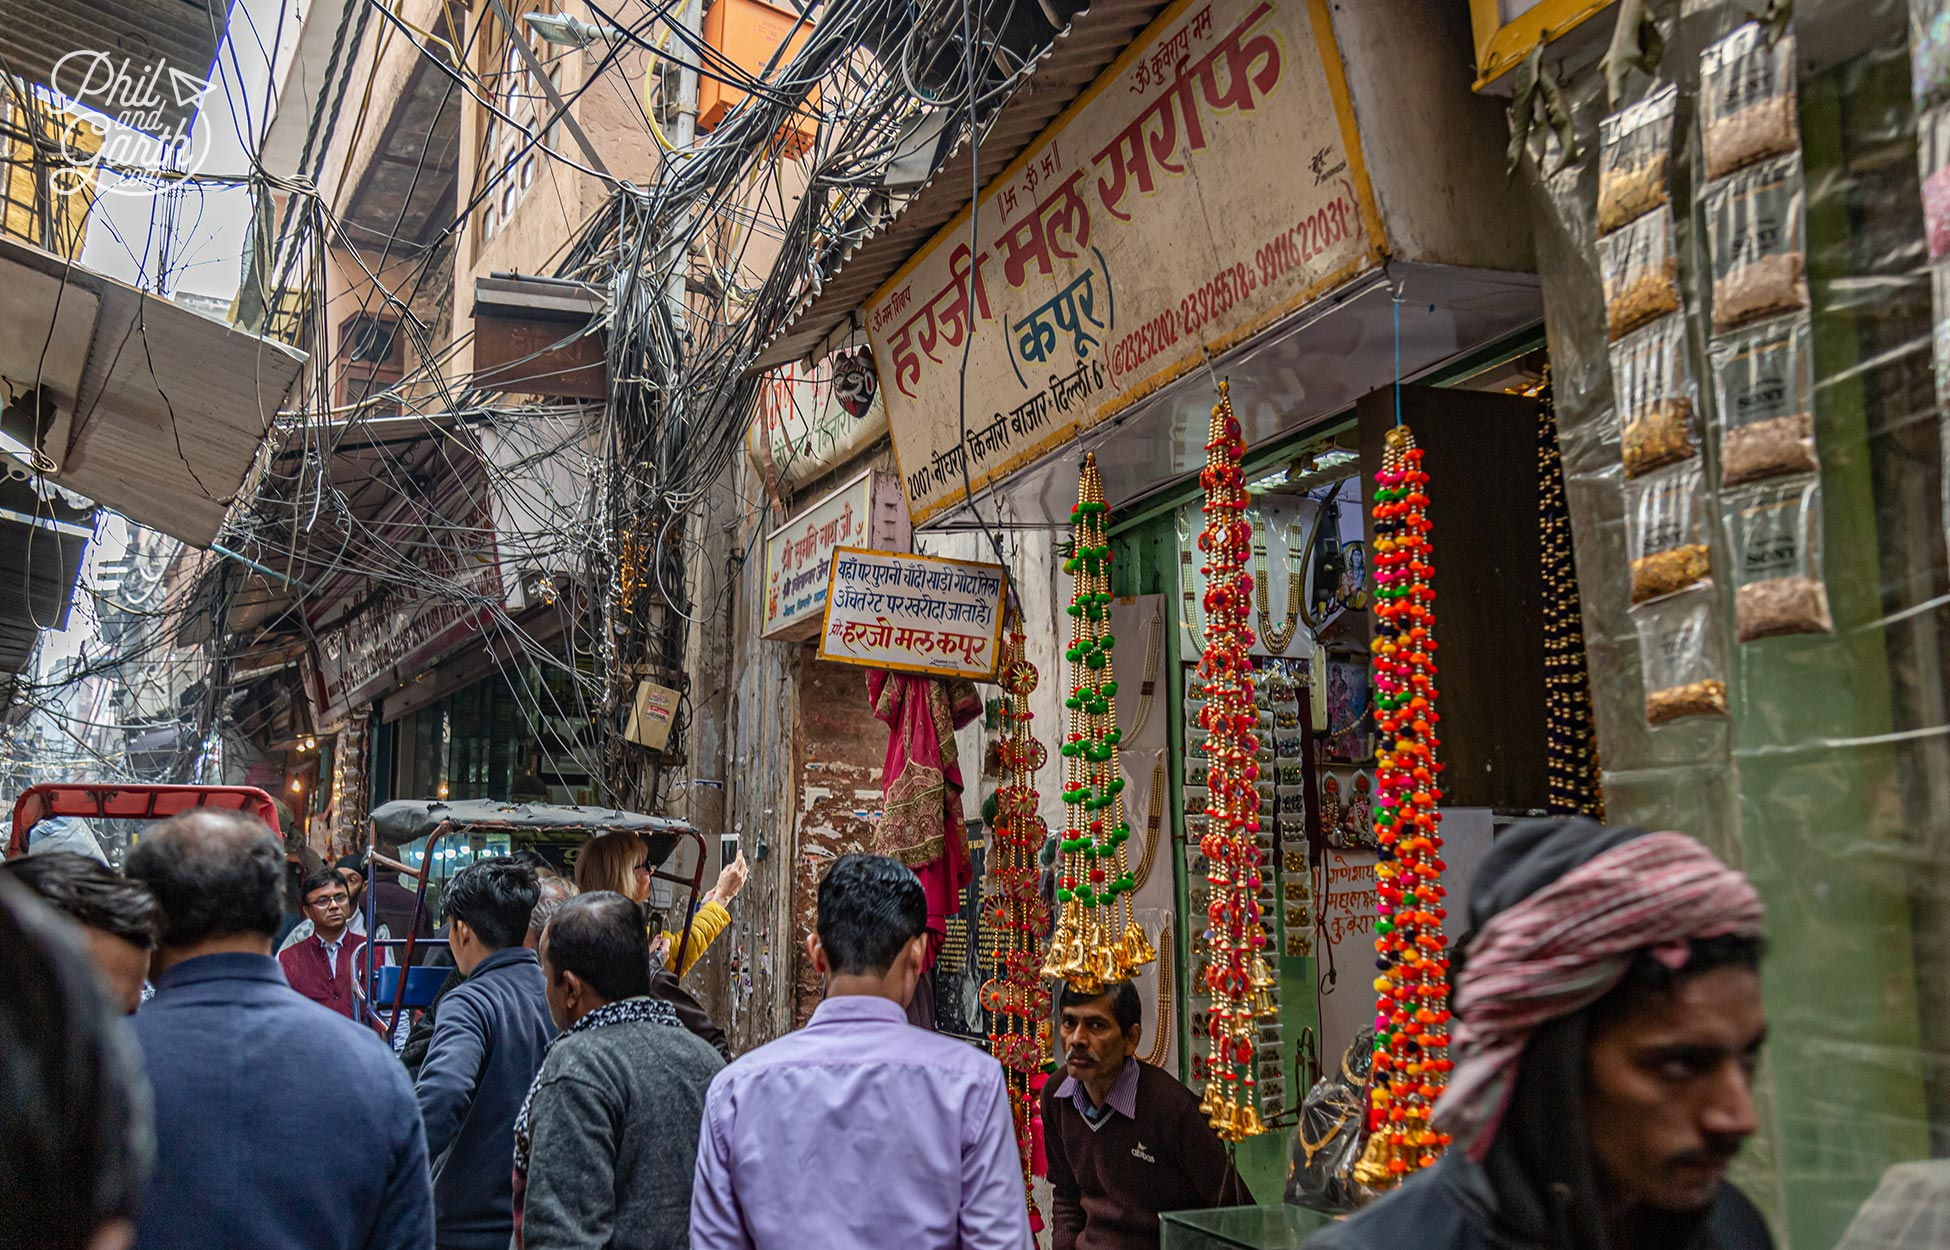 The market is a labyrinthof narrow streets